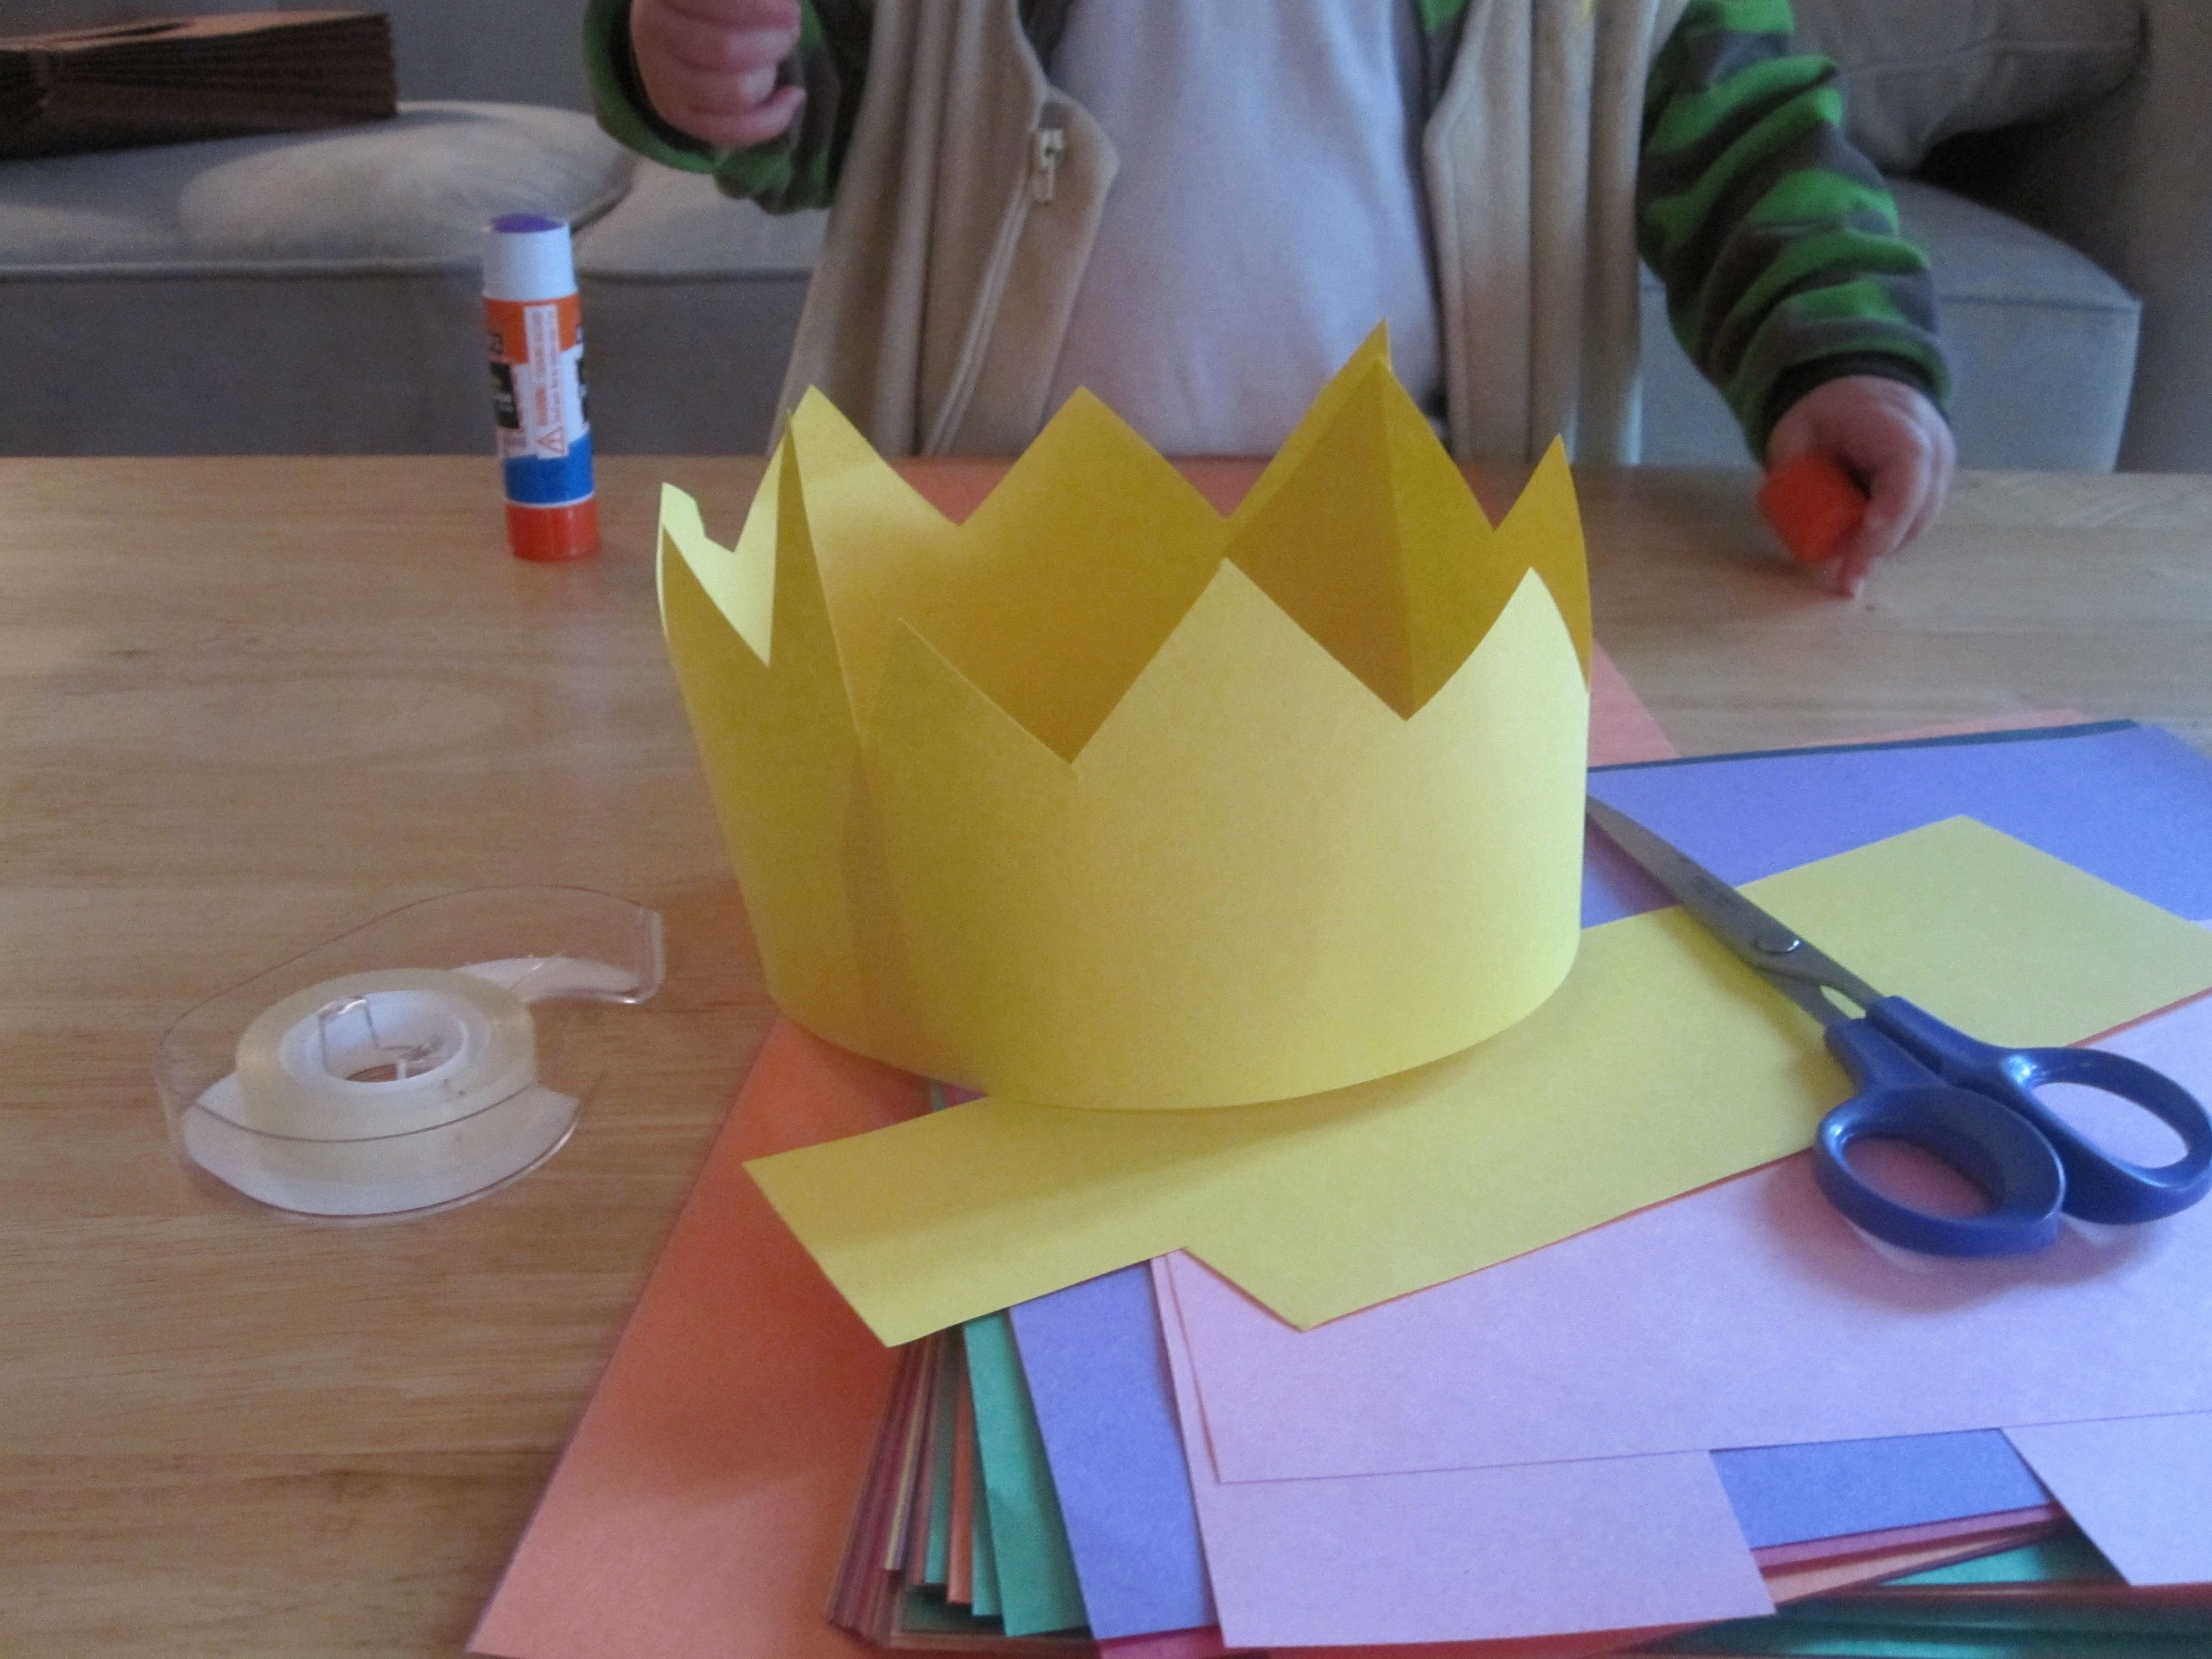 Paper Crown Cut Outs Inspirational Construction Paper Crowns I Would some Jewels to Put